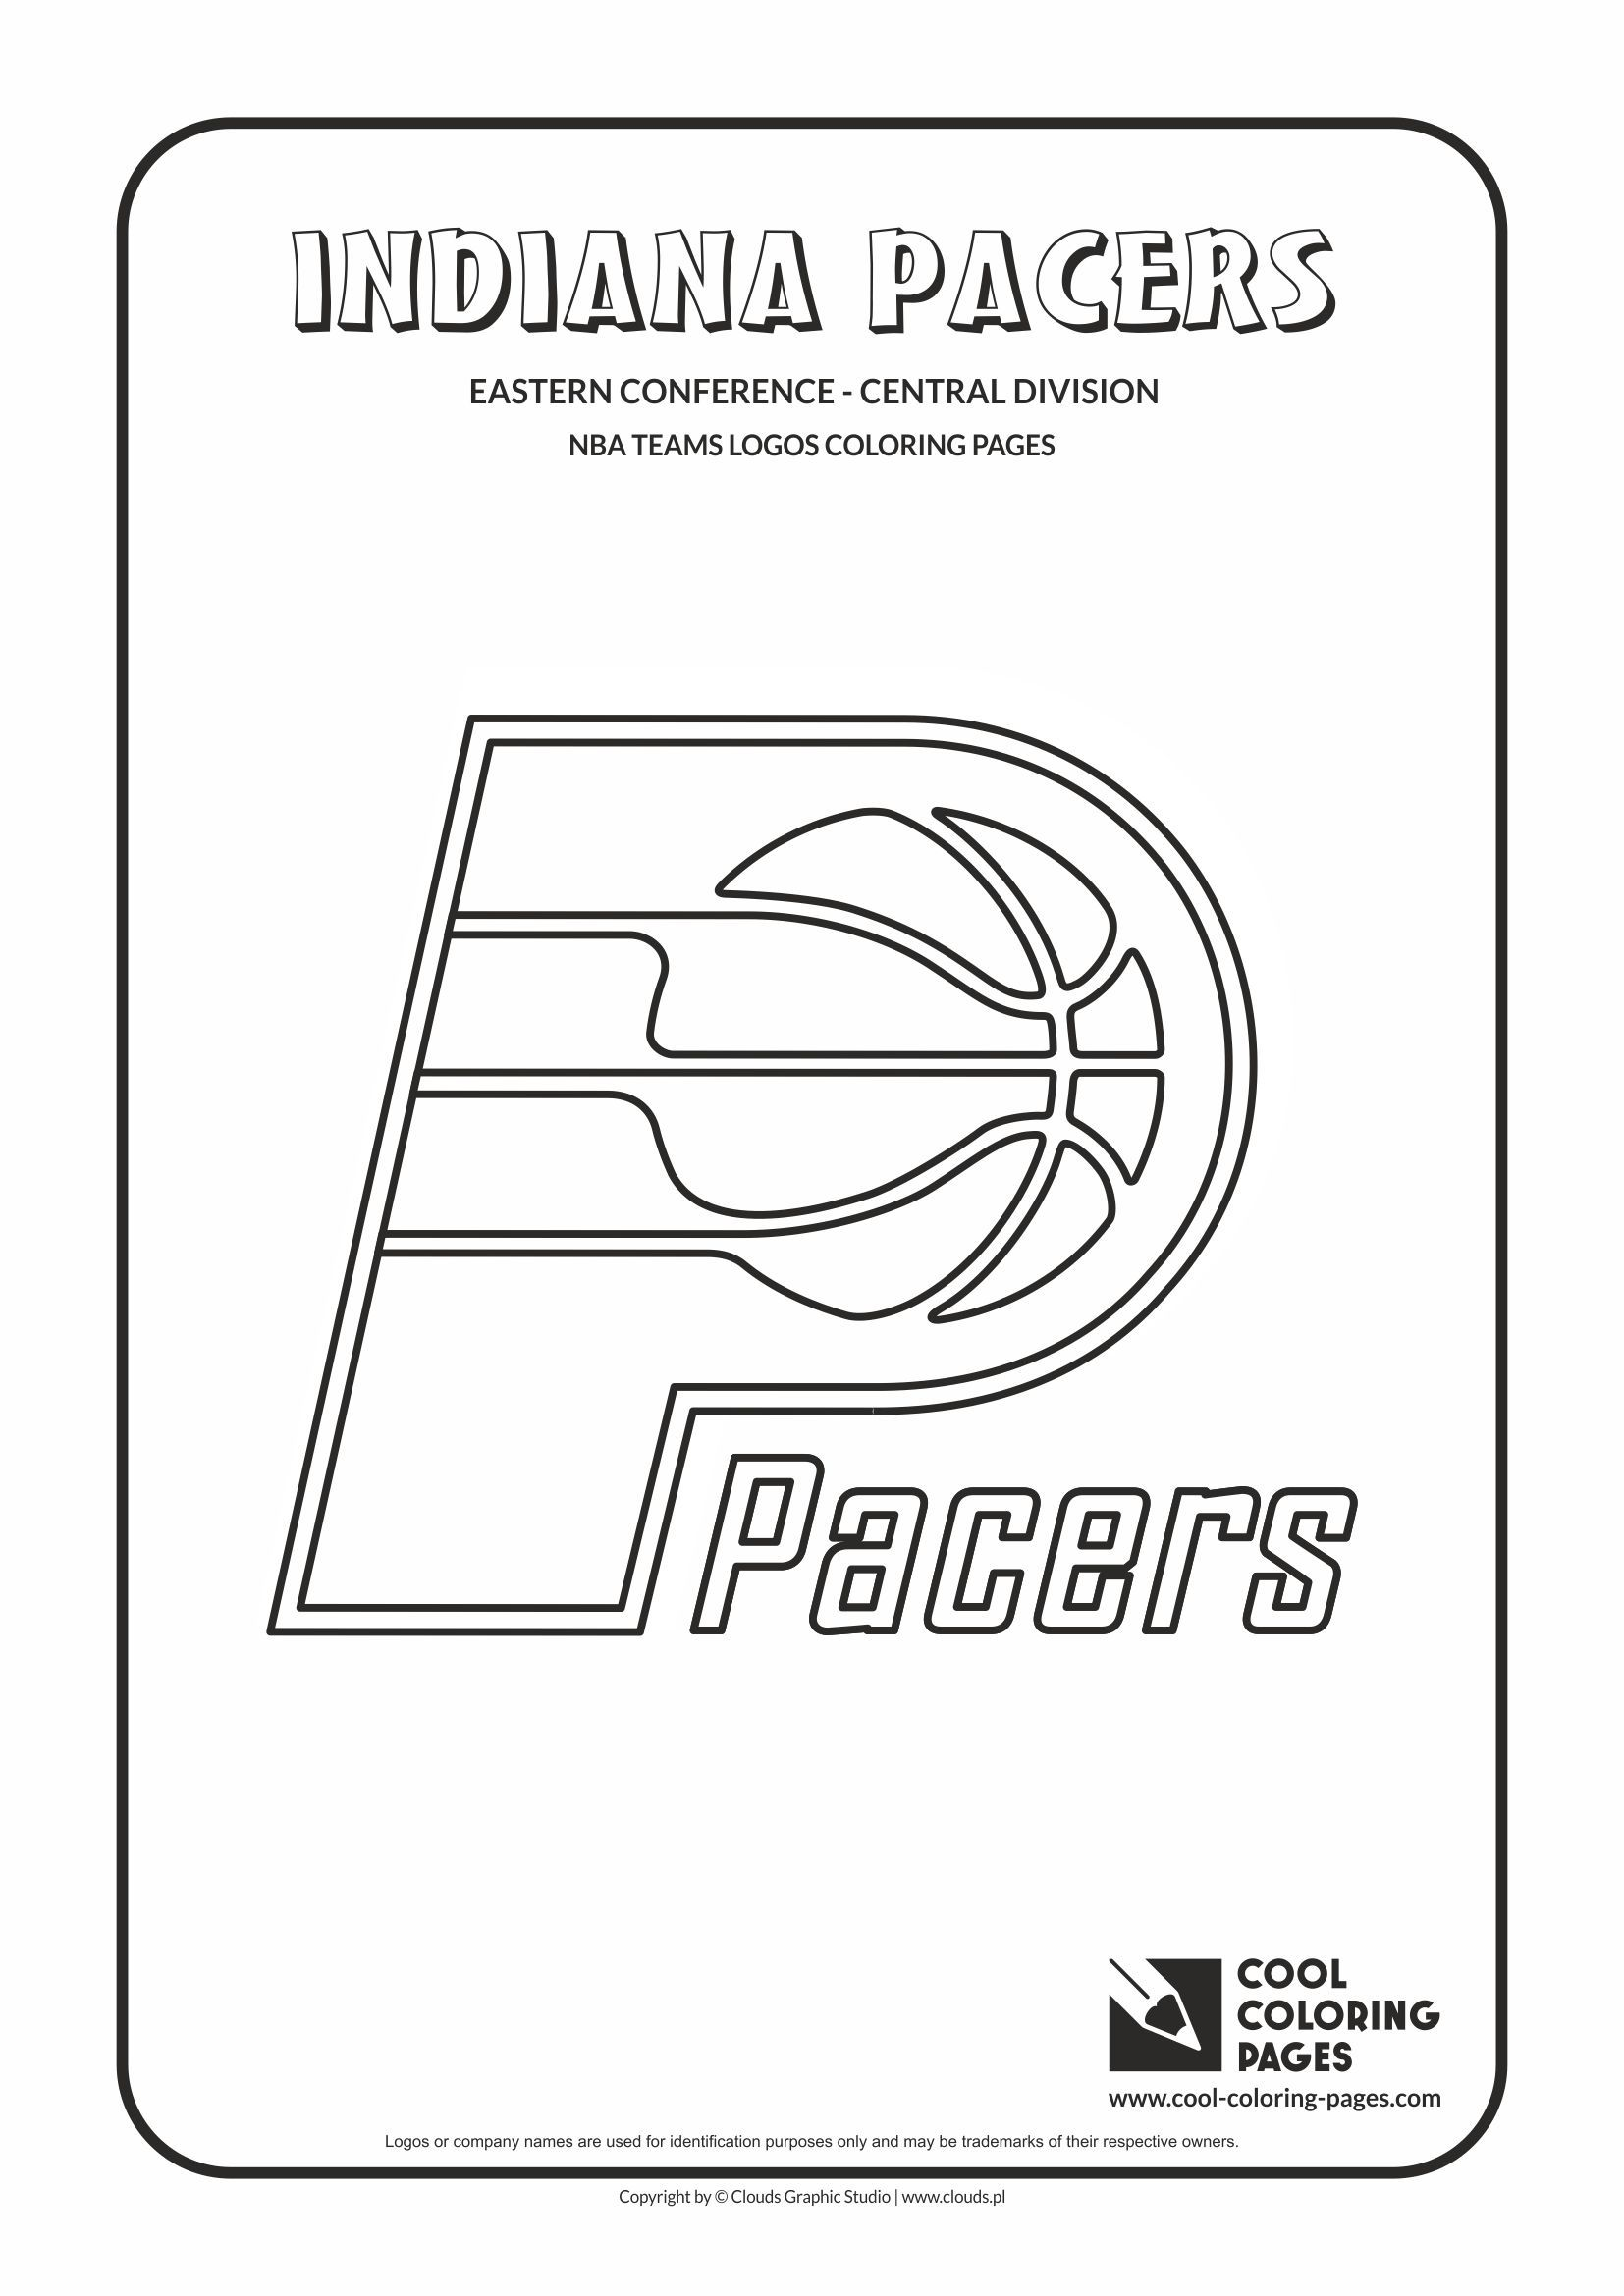 cool coloring pages nba teams logos indiana pacers logo coloring page with